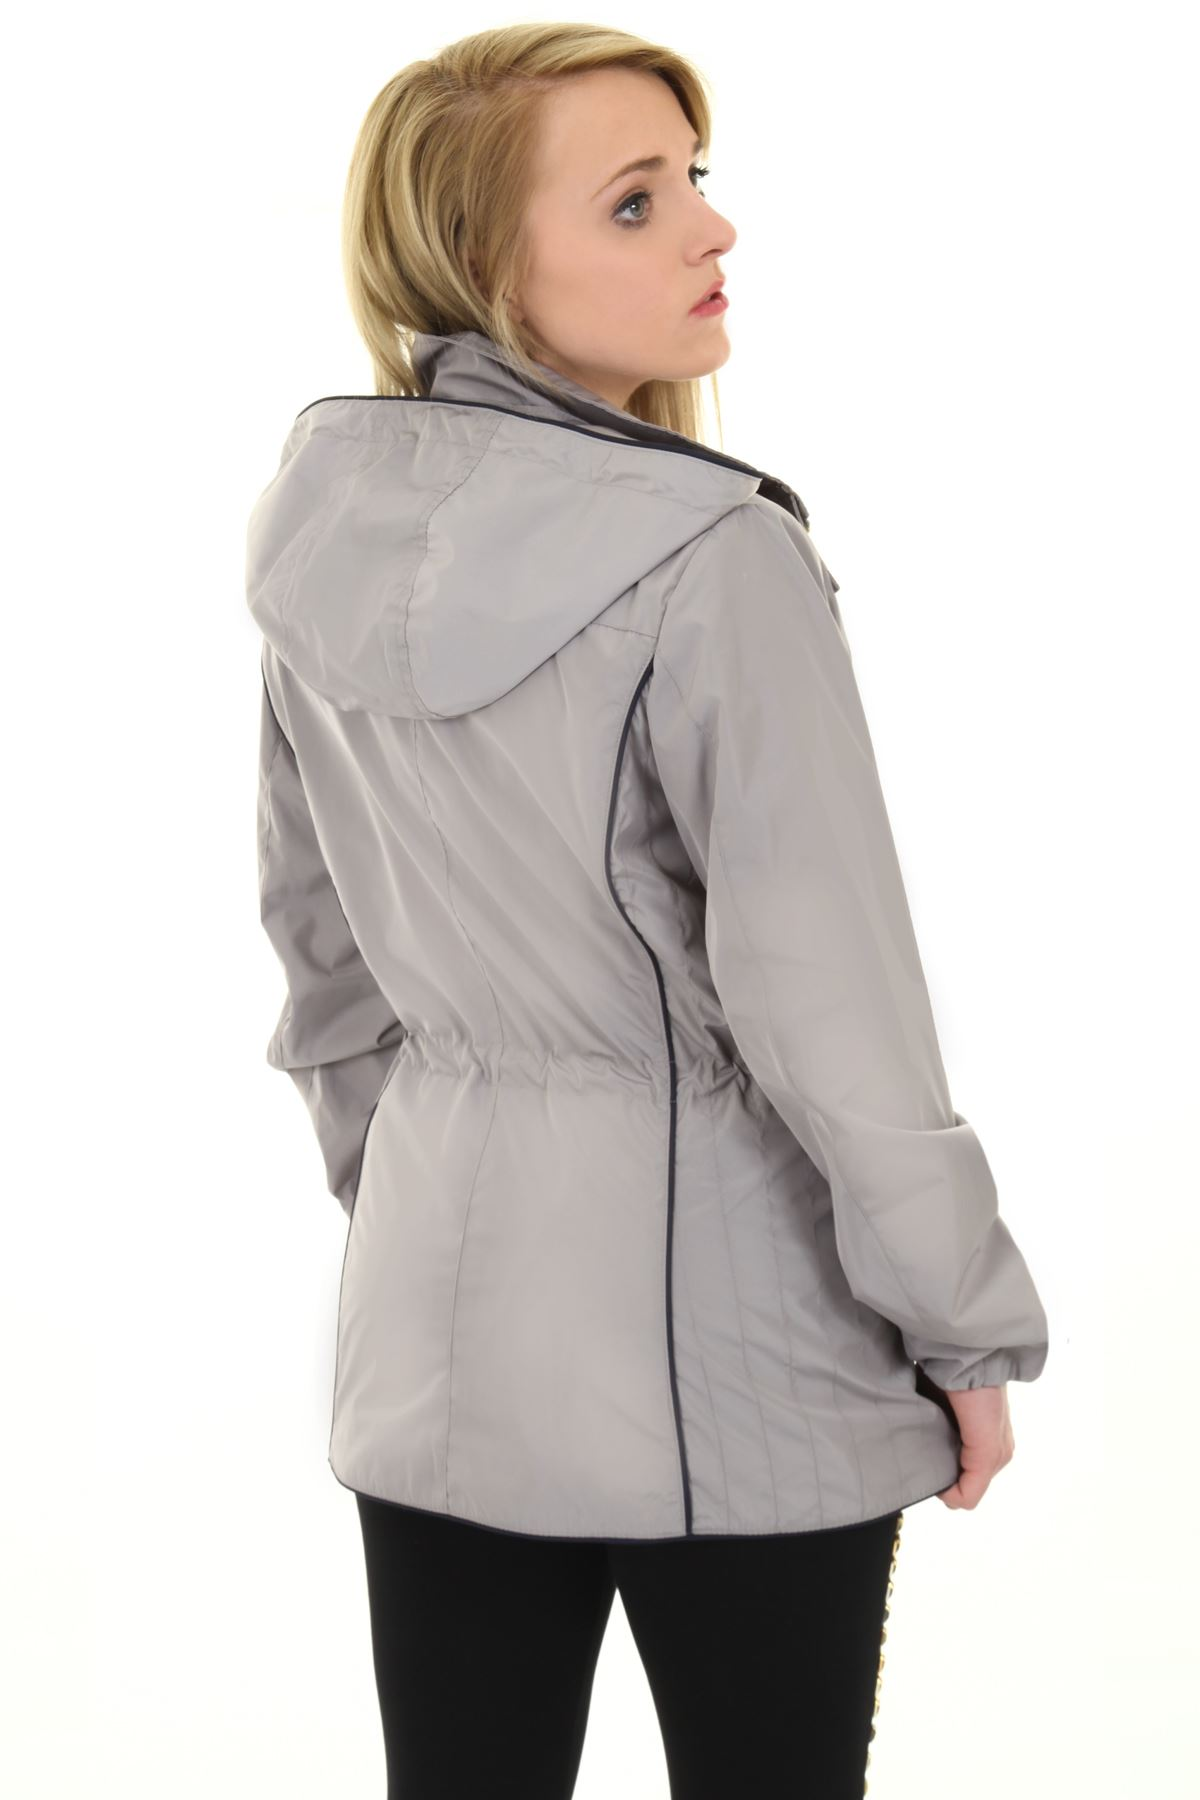 Find great deals on eBay for long waterproof coat womens. Shop with confidence. Skip to main content. eBay: Trespass Clea Womens Waterproof Jacket Ladies Long Rain Coat with Hood See more like this. Women Rain Coat Waterproof Jacket Long Hooded Poncho Womens Big Size Raincoats. 1 product rating [object Object] $